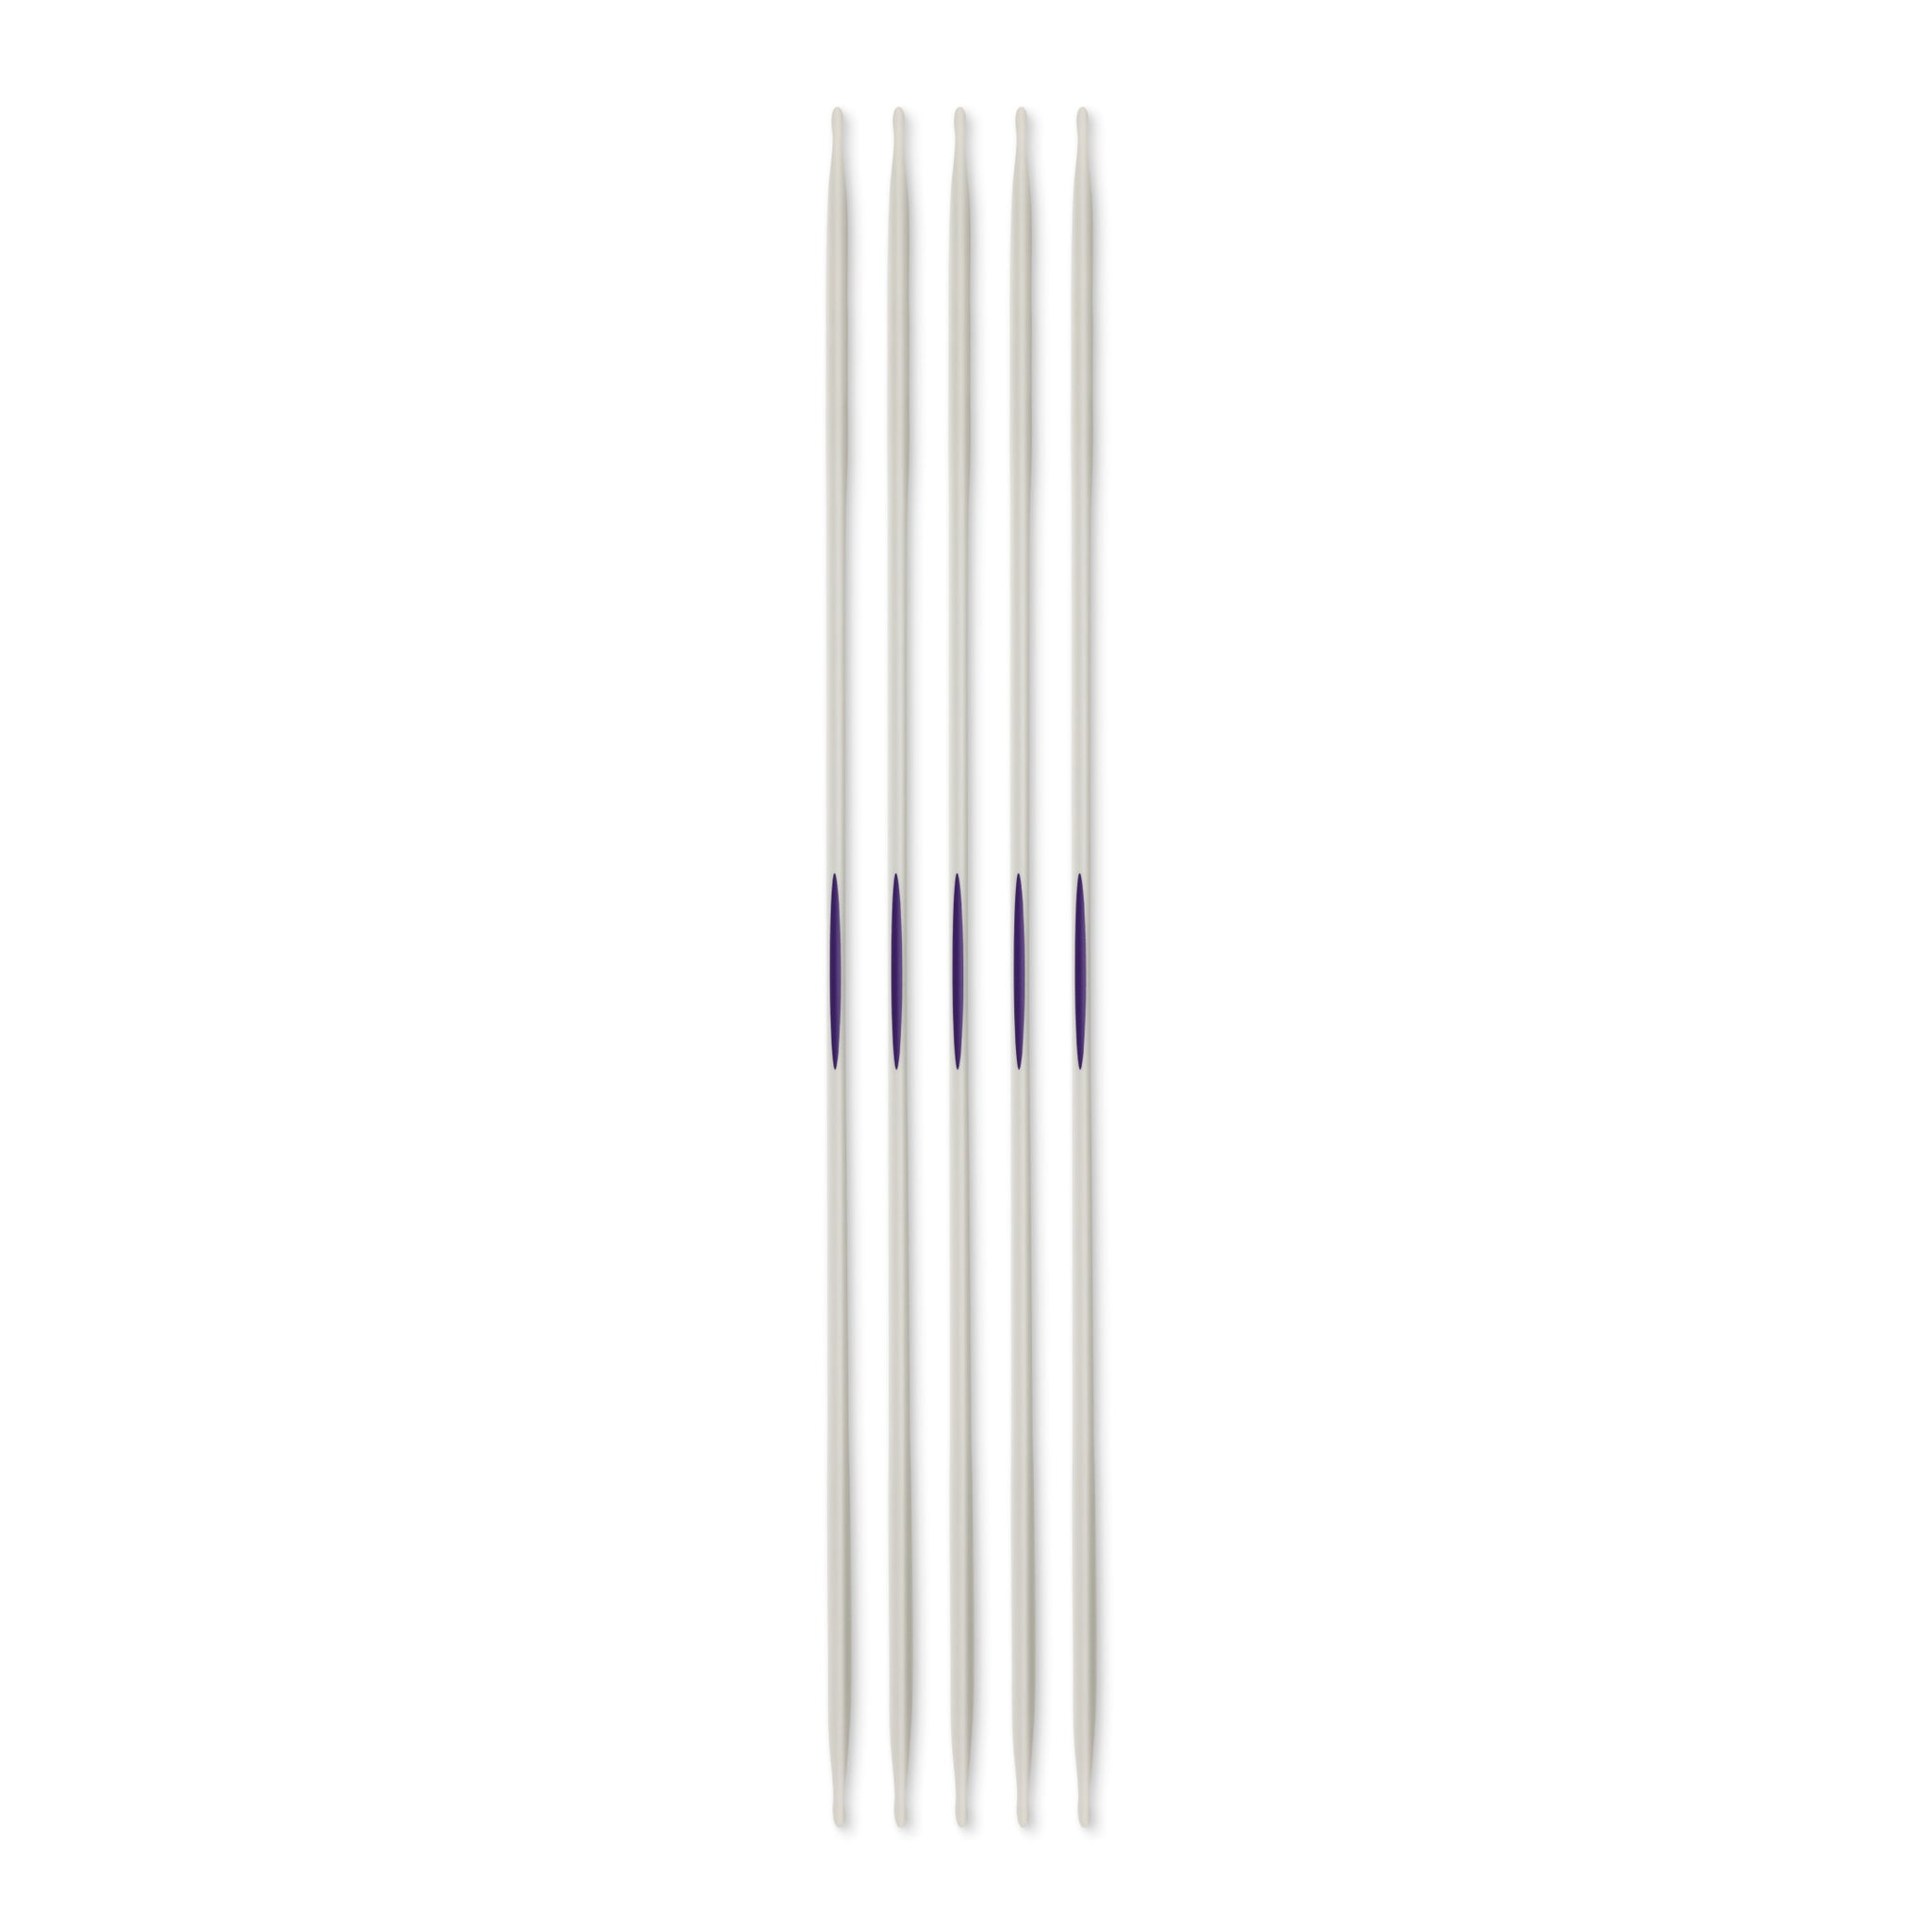 "US 1 (2.5mm) - 8"" Double Point Knitting Needles"